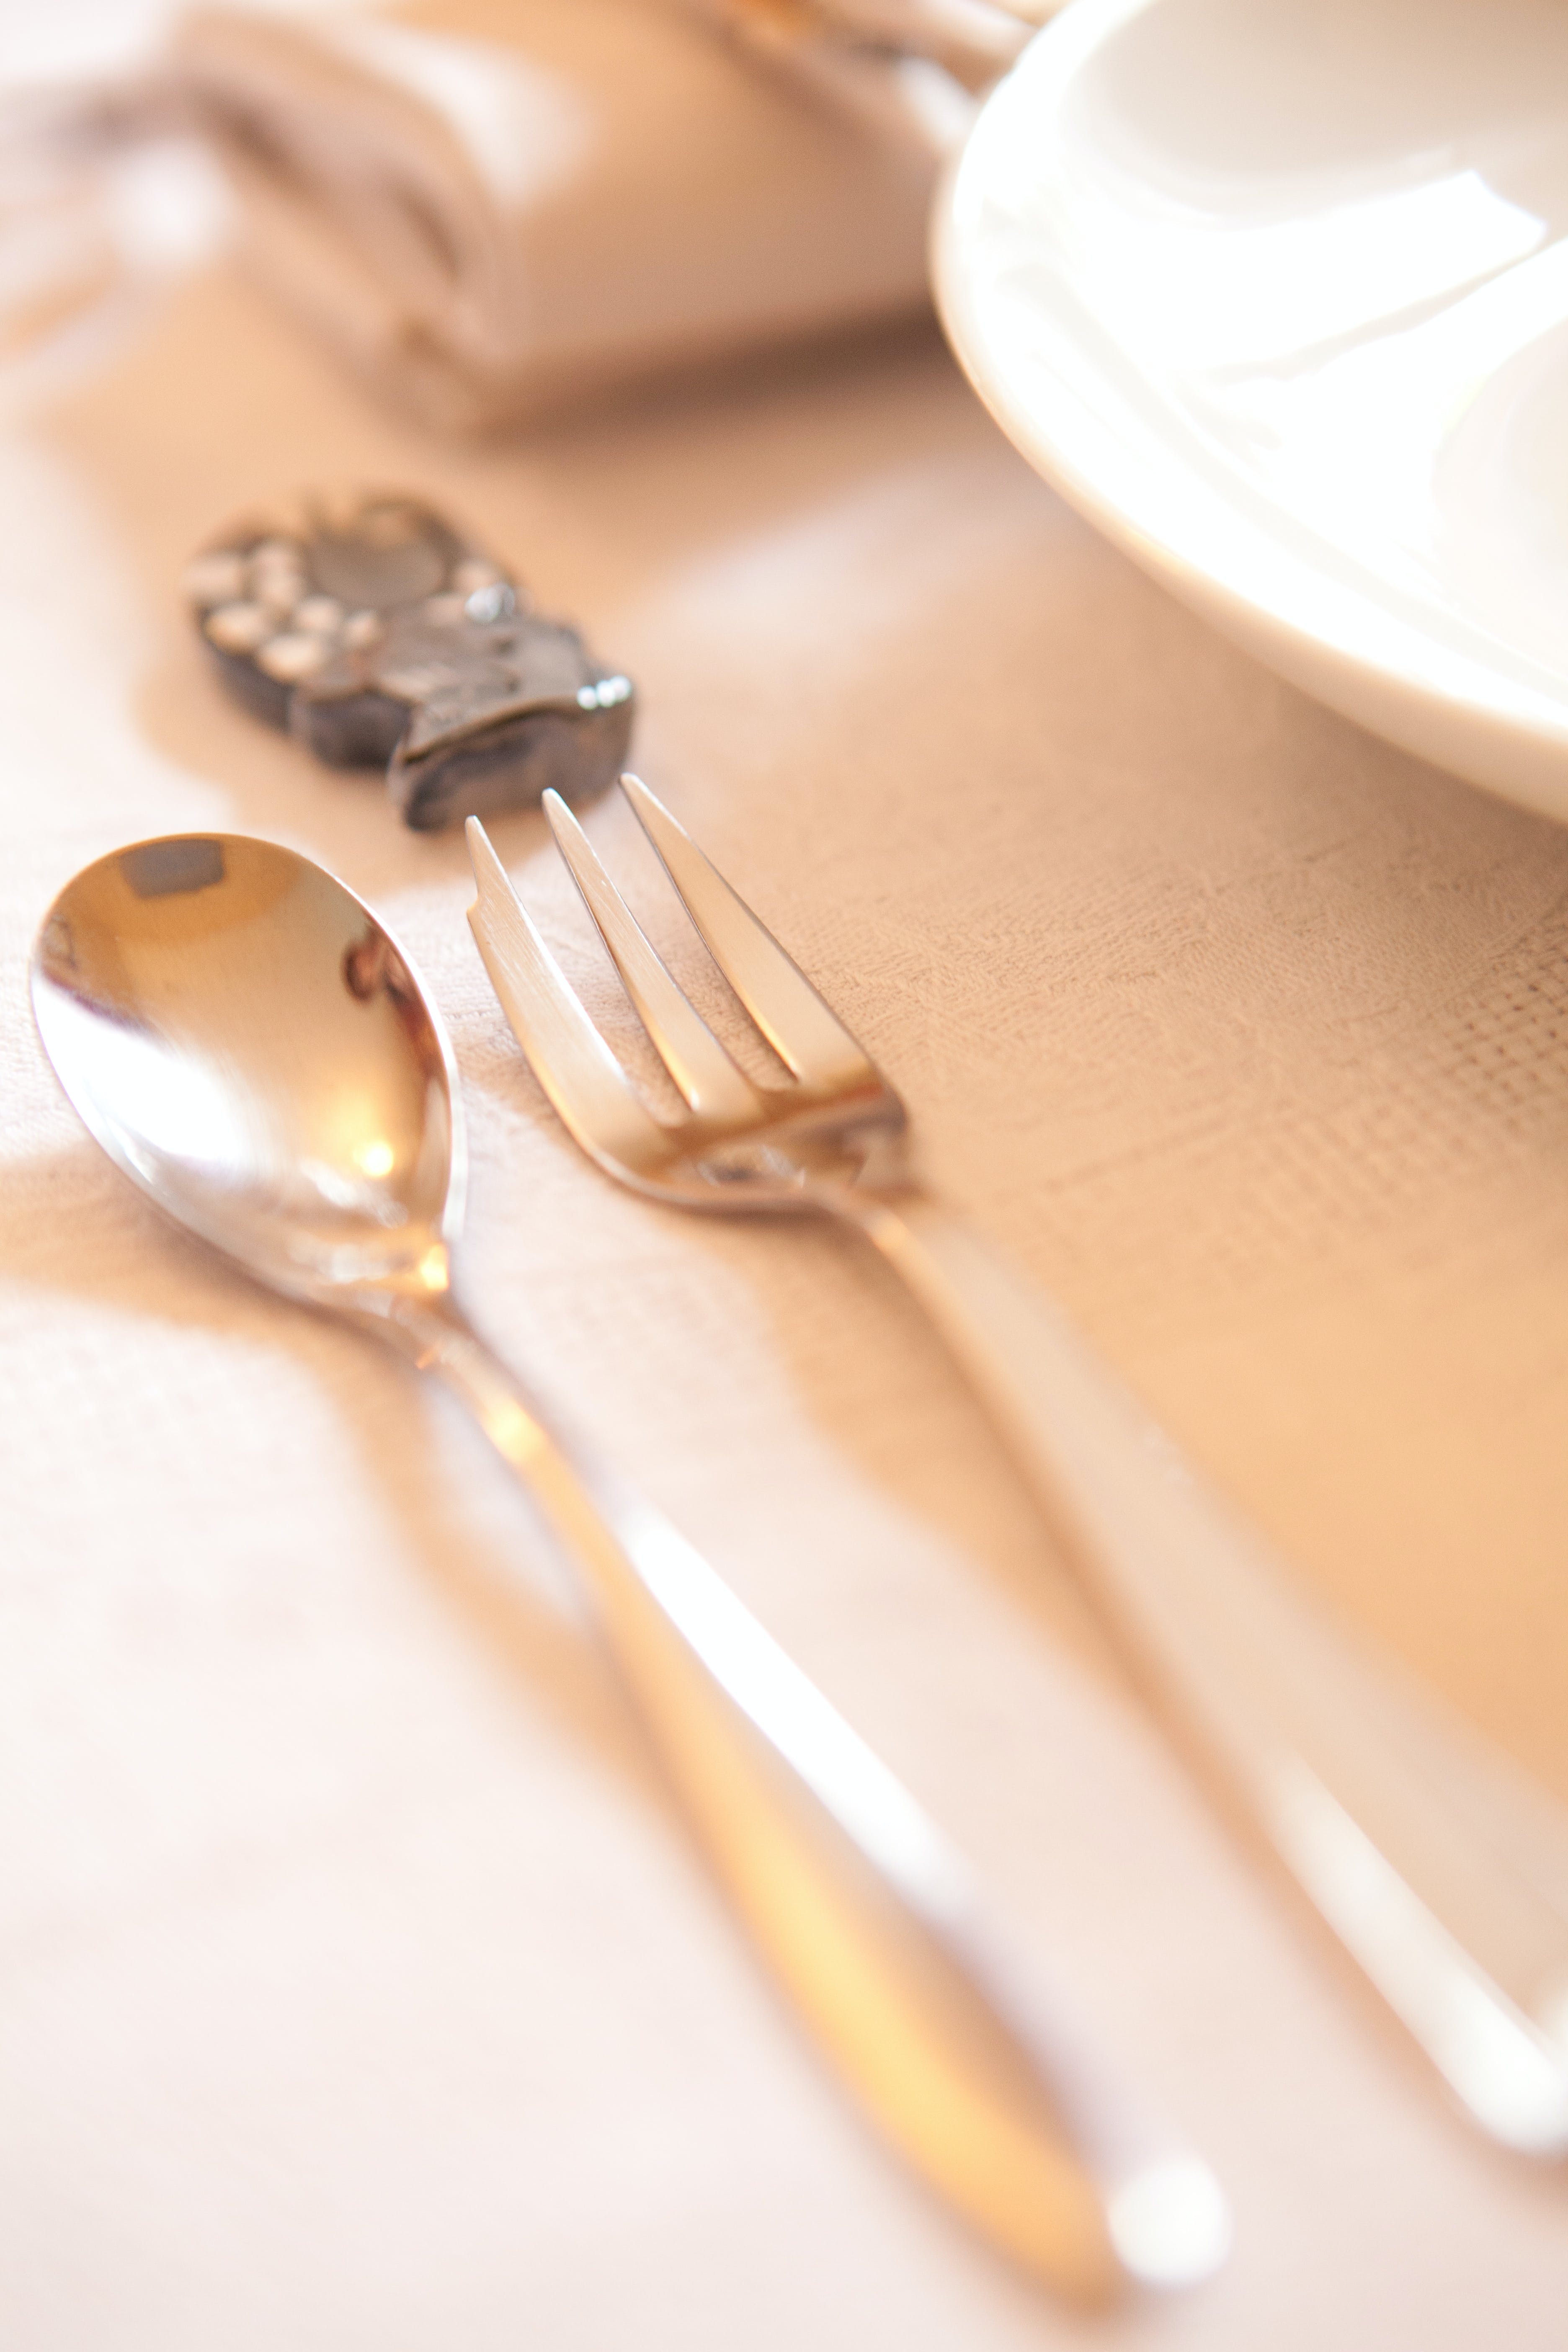 Free stock photo of bokeh, close-up, dining table, fork